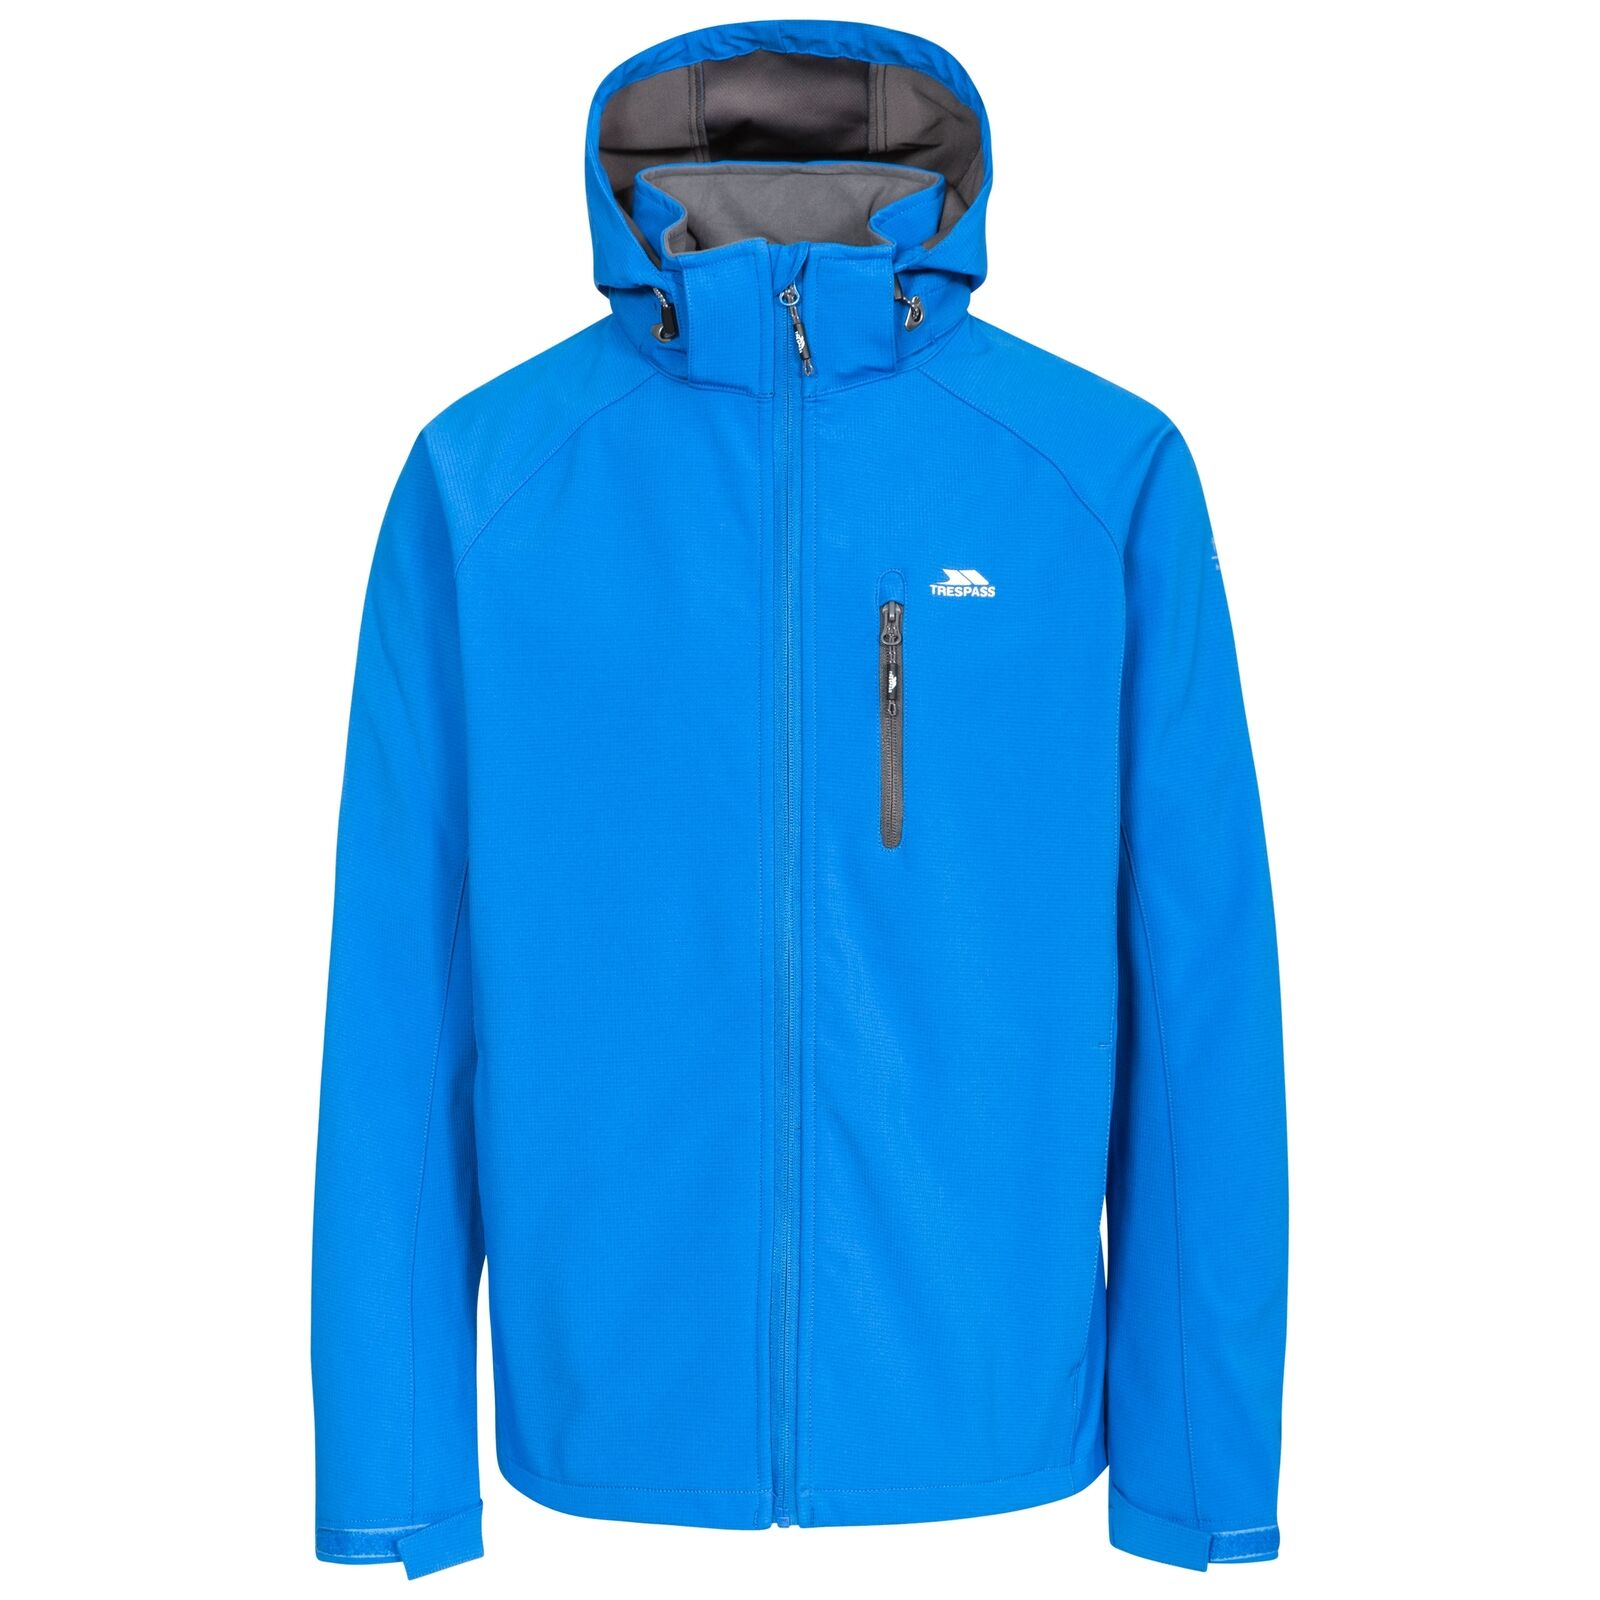 TP4135 Trespass Mens Nider Waterproof Softshell Jacket